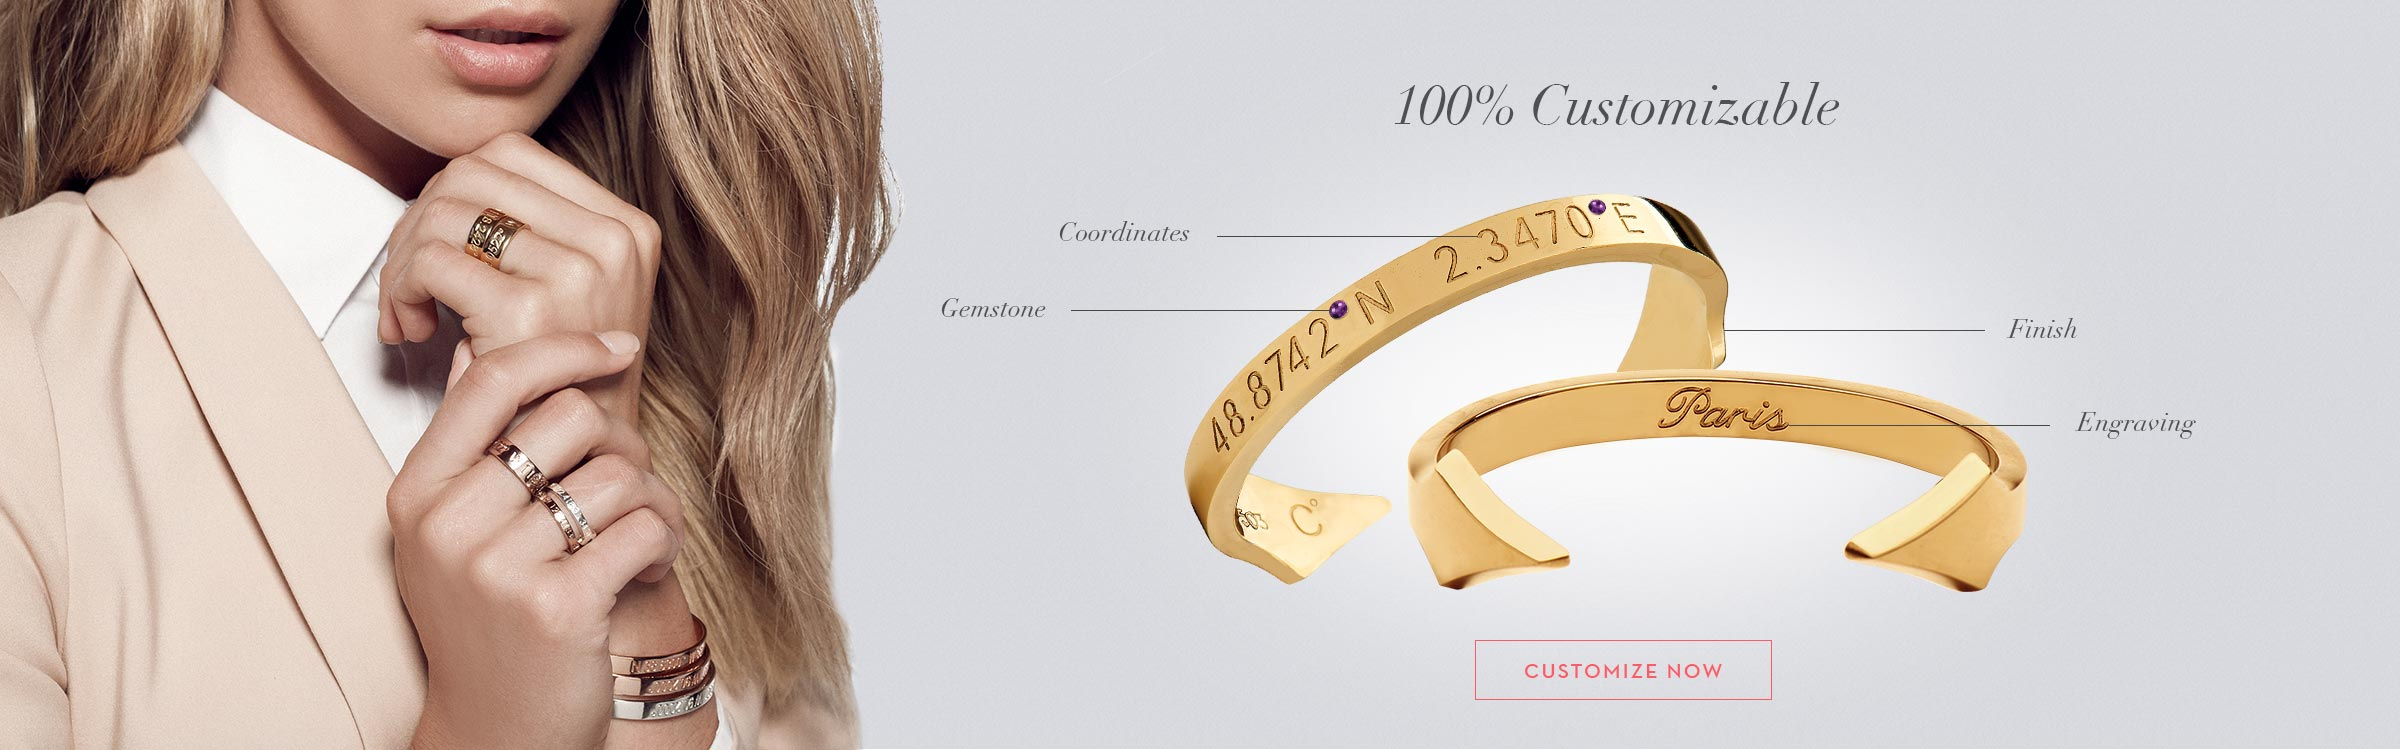 Coordinates Collection - For That Special Moment